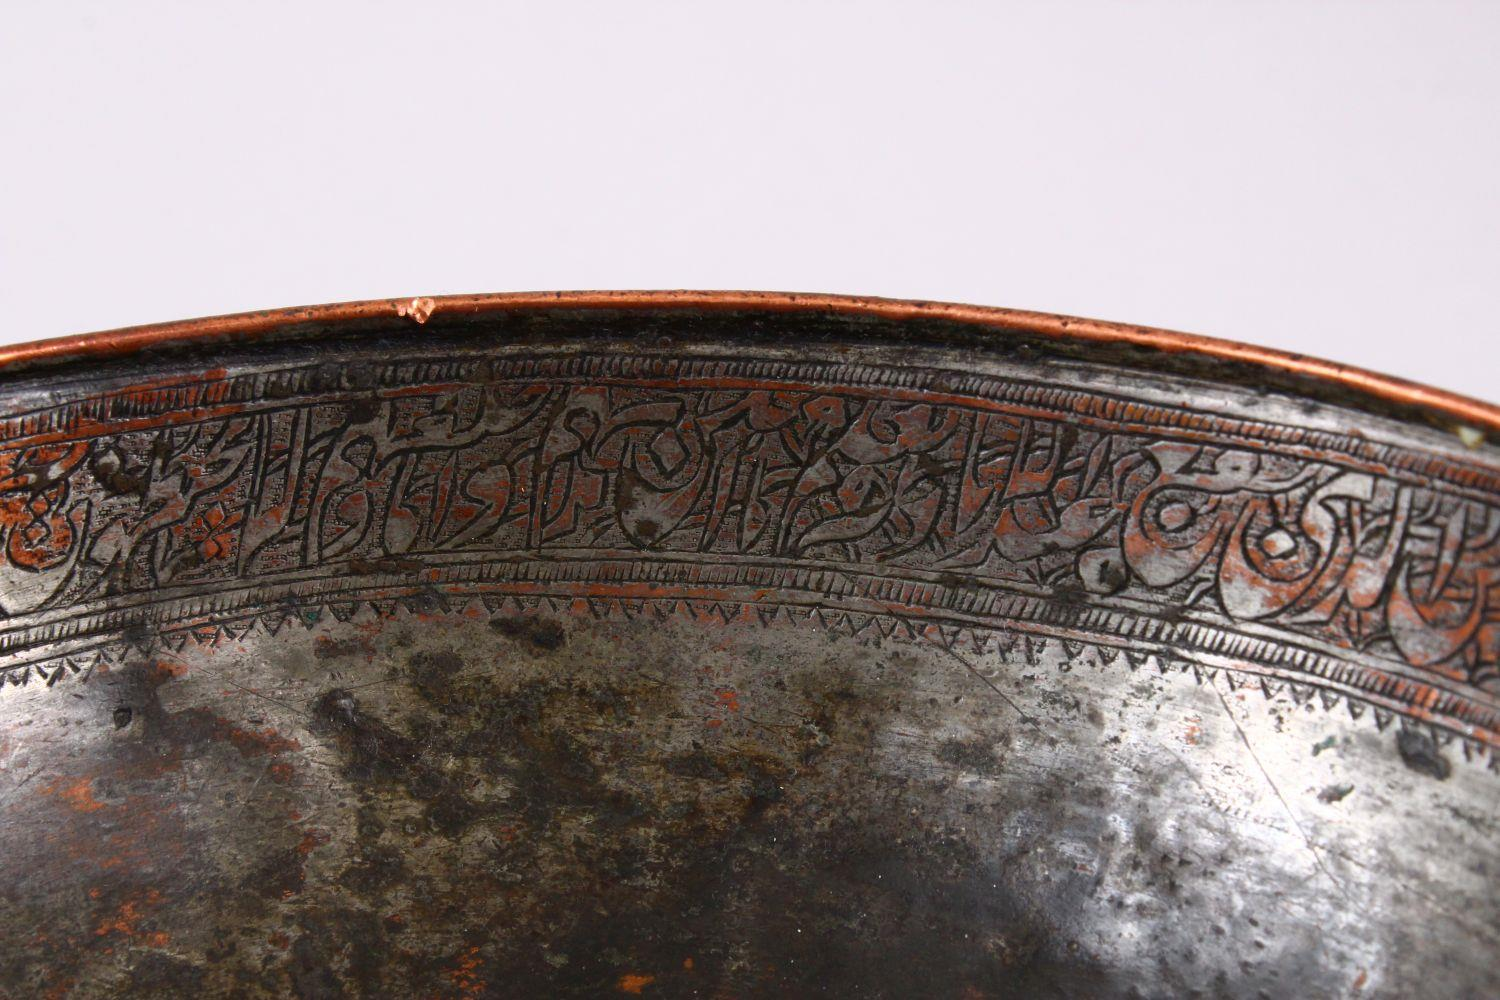 A UNUSUAL ISLAMIC TINNED HAMMERED COPPER CALLIGRAPHIC BOWL, decorated with interior & exterior bands - Image 6 of 8